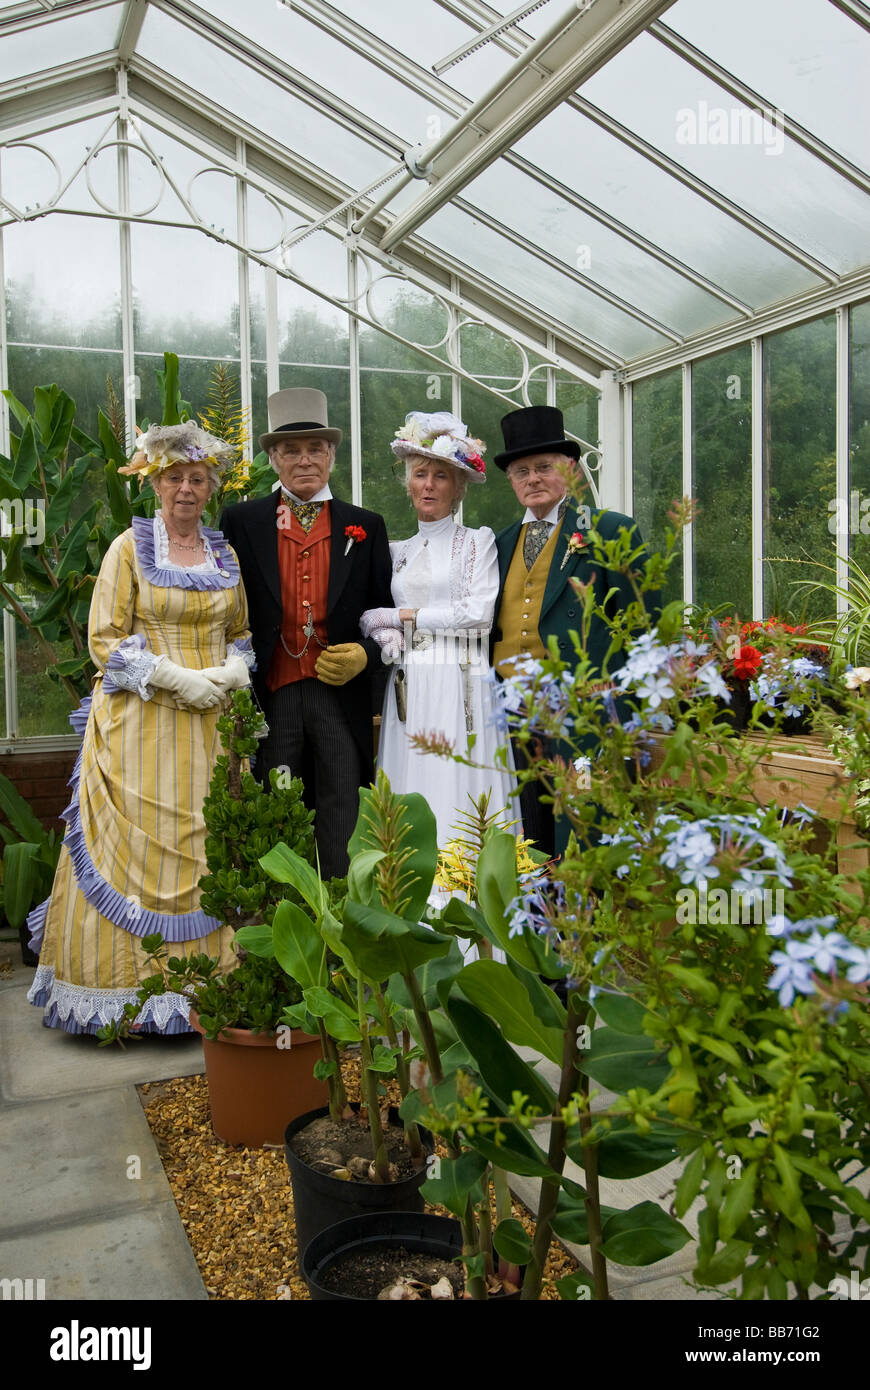 Ravishing People In Victorian Dress Posing In A Glasshouse At Hill Close  With Excellent People In Victorian Dress Posing In A Glasshouse At Hill Close Gardens  Warwick England Uk With Enchanting Planter Walls In Gardens Also Large Garden Storage Box In Addition Grannys Garden And Spa Covent Garden As Well As Walsh Hatton Garden Additionally Garden Drinks Cooler From Alamycom With   Enchanting People In Victorian Dress Posing In A Glasshouse At Hill Close  With Ravishing Spa Covent Garden As Well As Walsh Hatton Garden Additionally Garden Drinks Cooler And Excellent People In Victorian Dress Posing In A Glasshouse At Hill Close Gardens  Warwick England Uk Via Alamycom